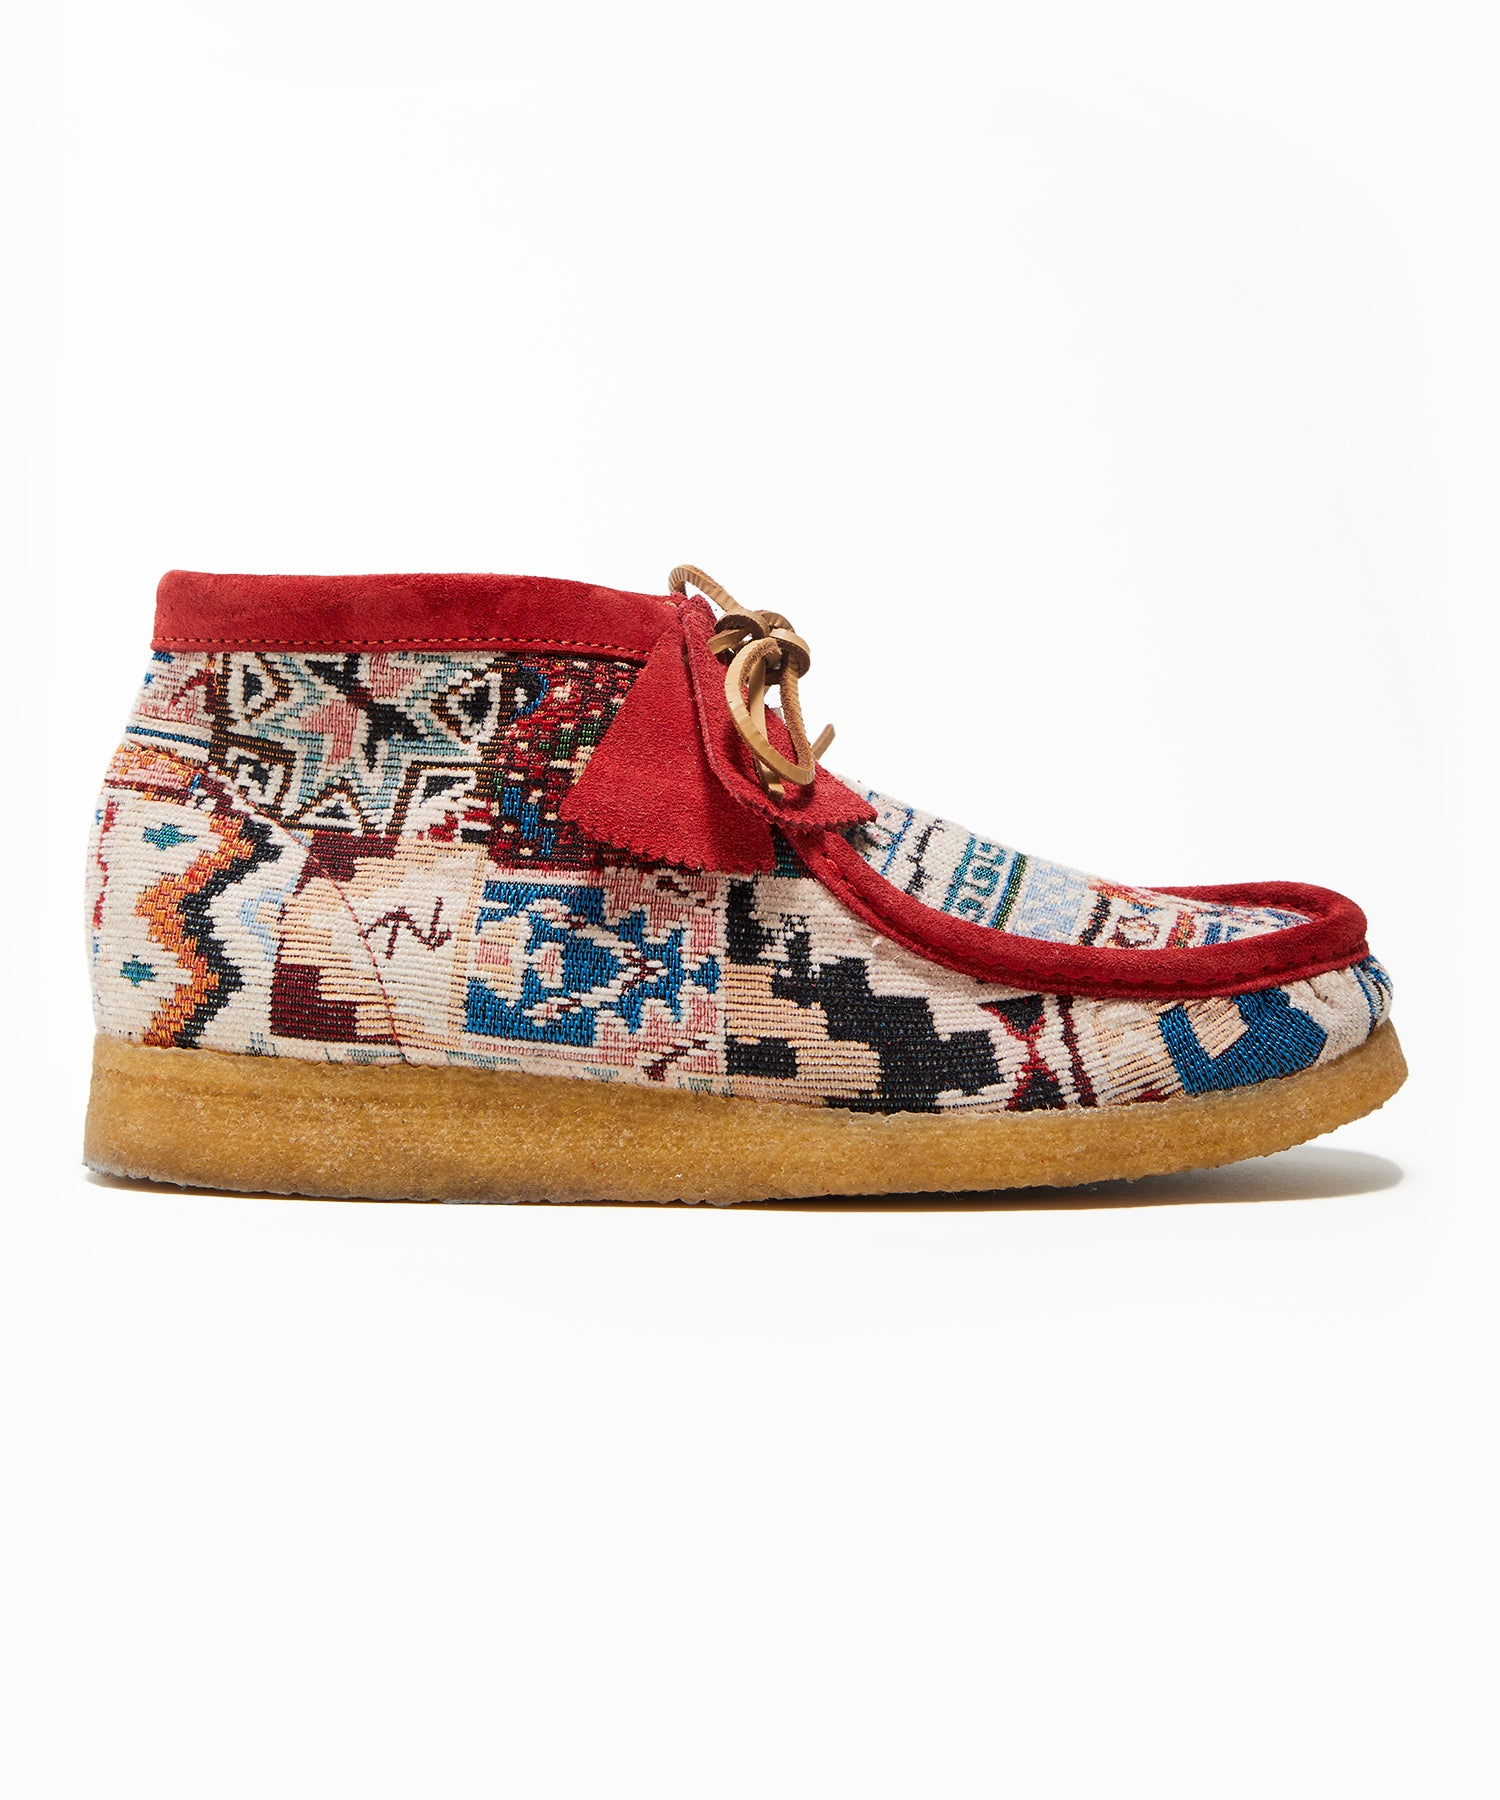 Todd Snyder x Clarks Originals Kaleidoscopic Red Wallabee Boot